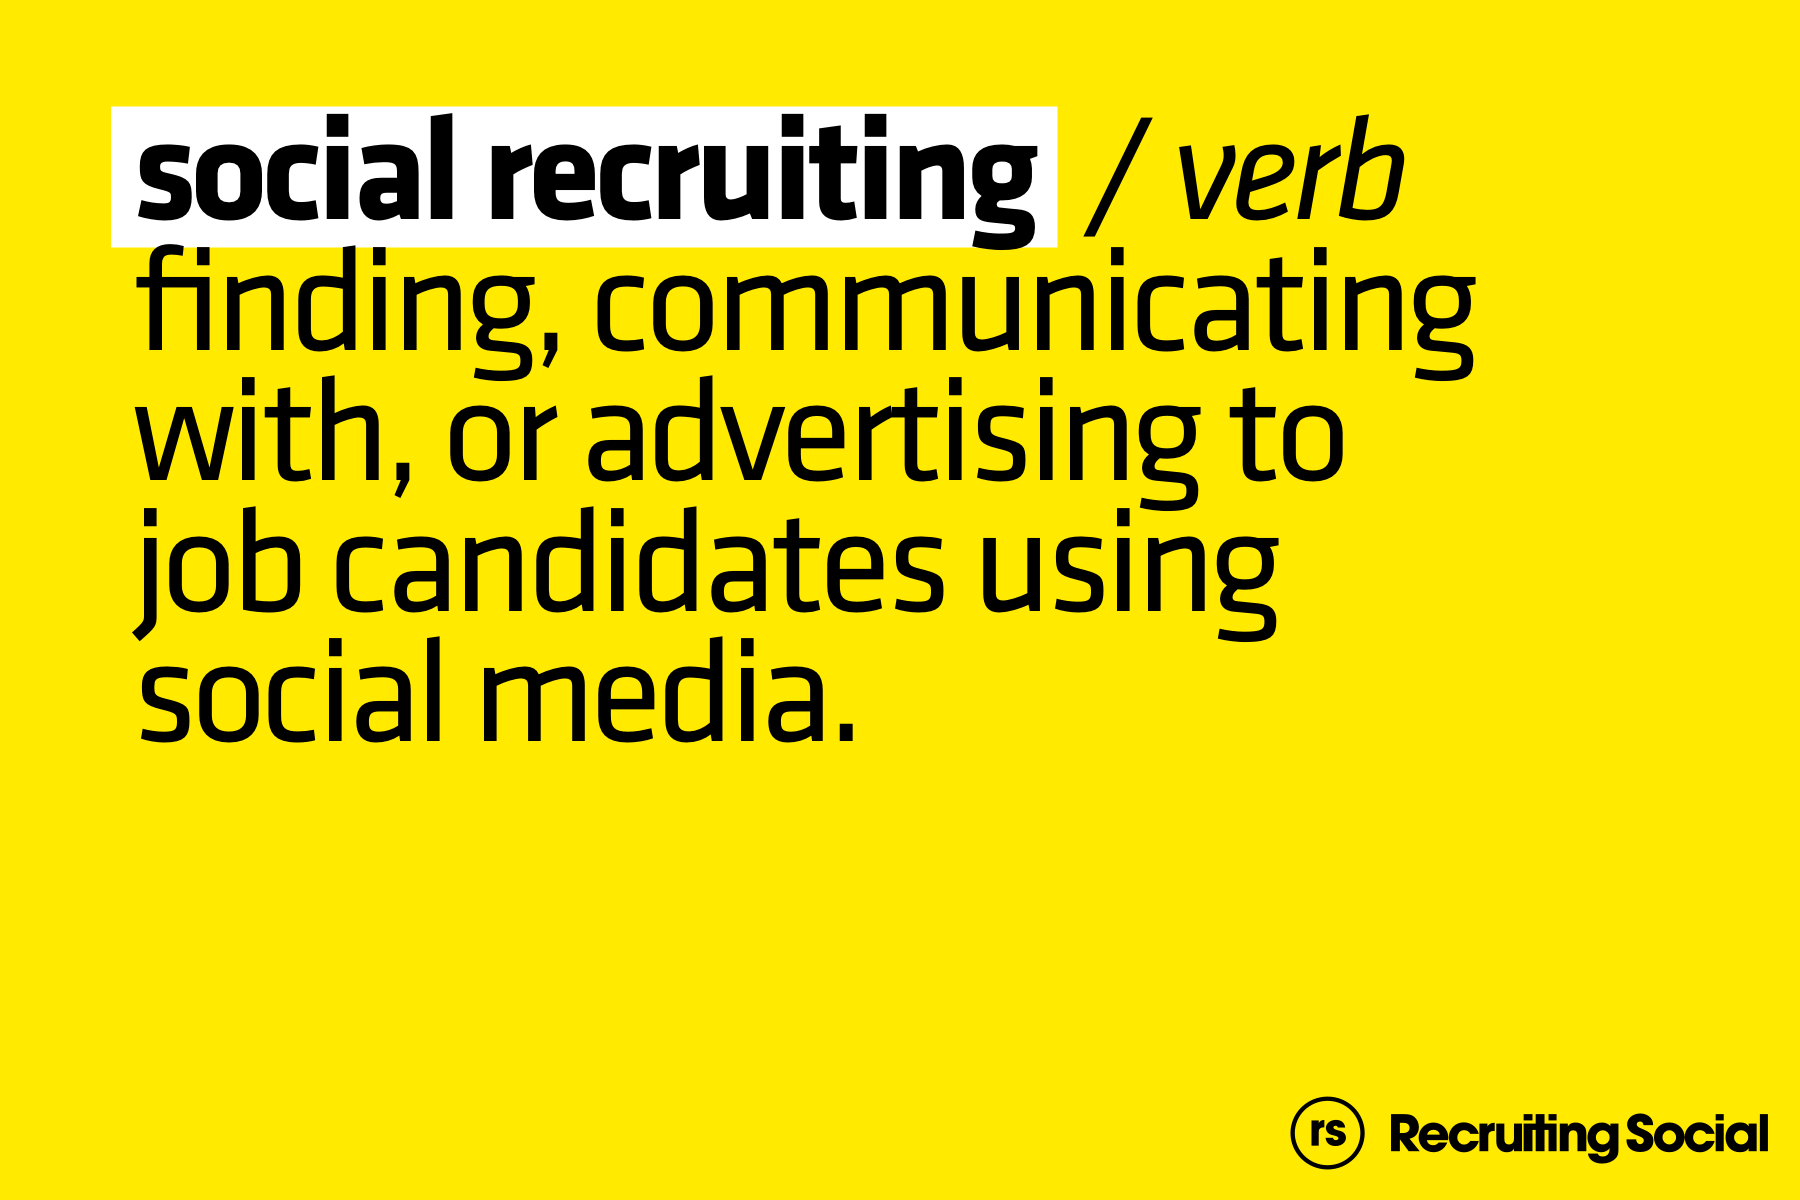 social-recruiting-definitionx1.5.png